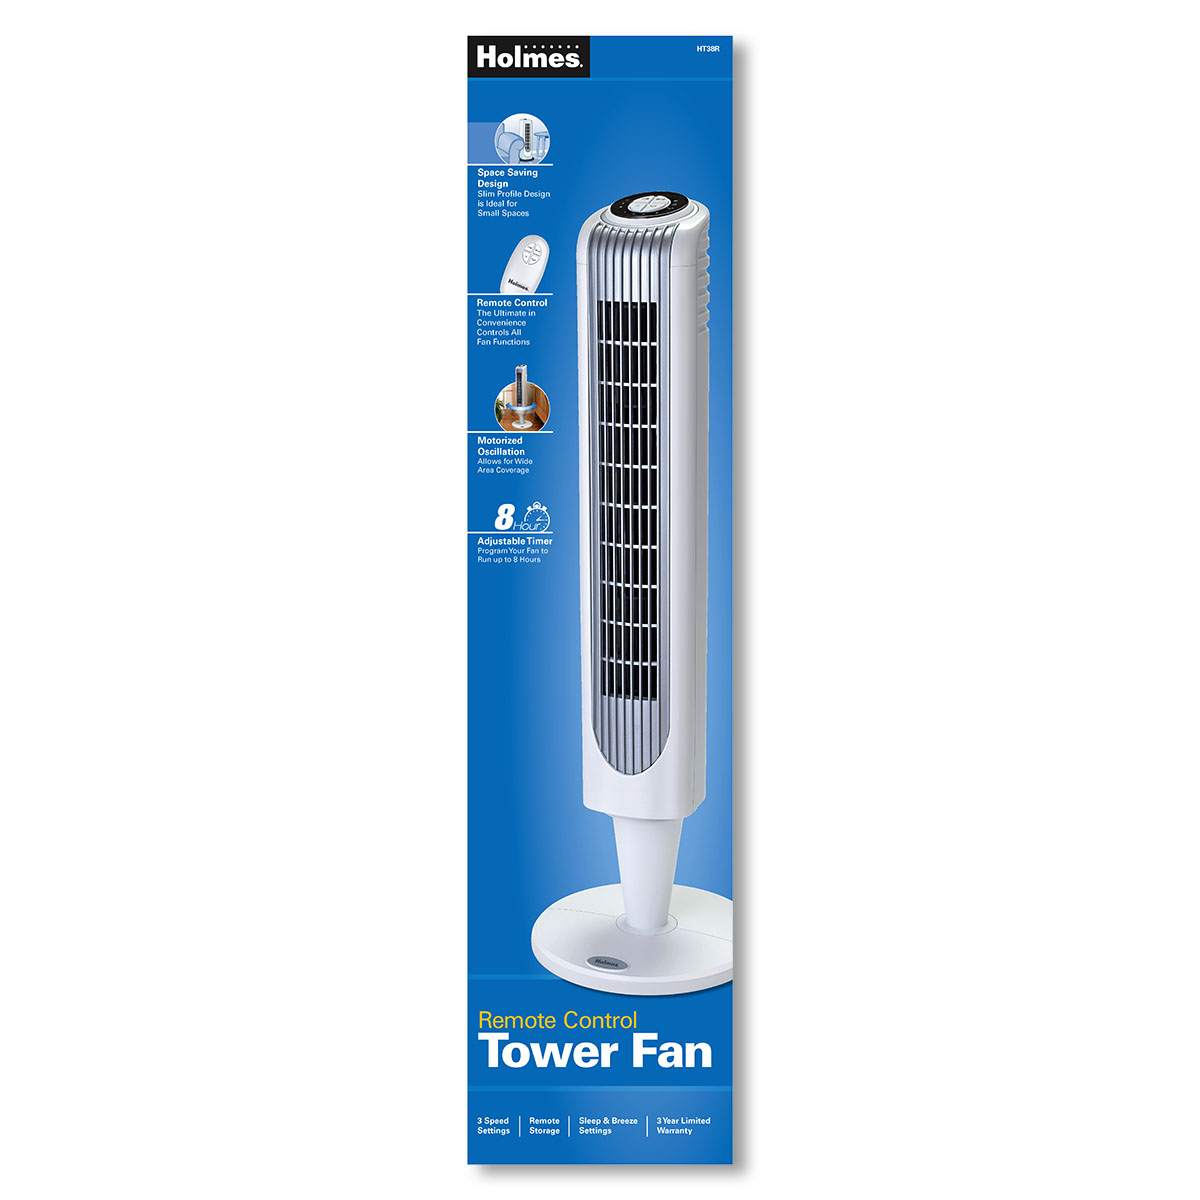 Holmes 32 Inch Remote Control Tower Fan in size 1200 X 1200